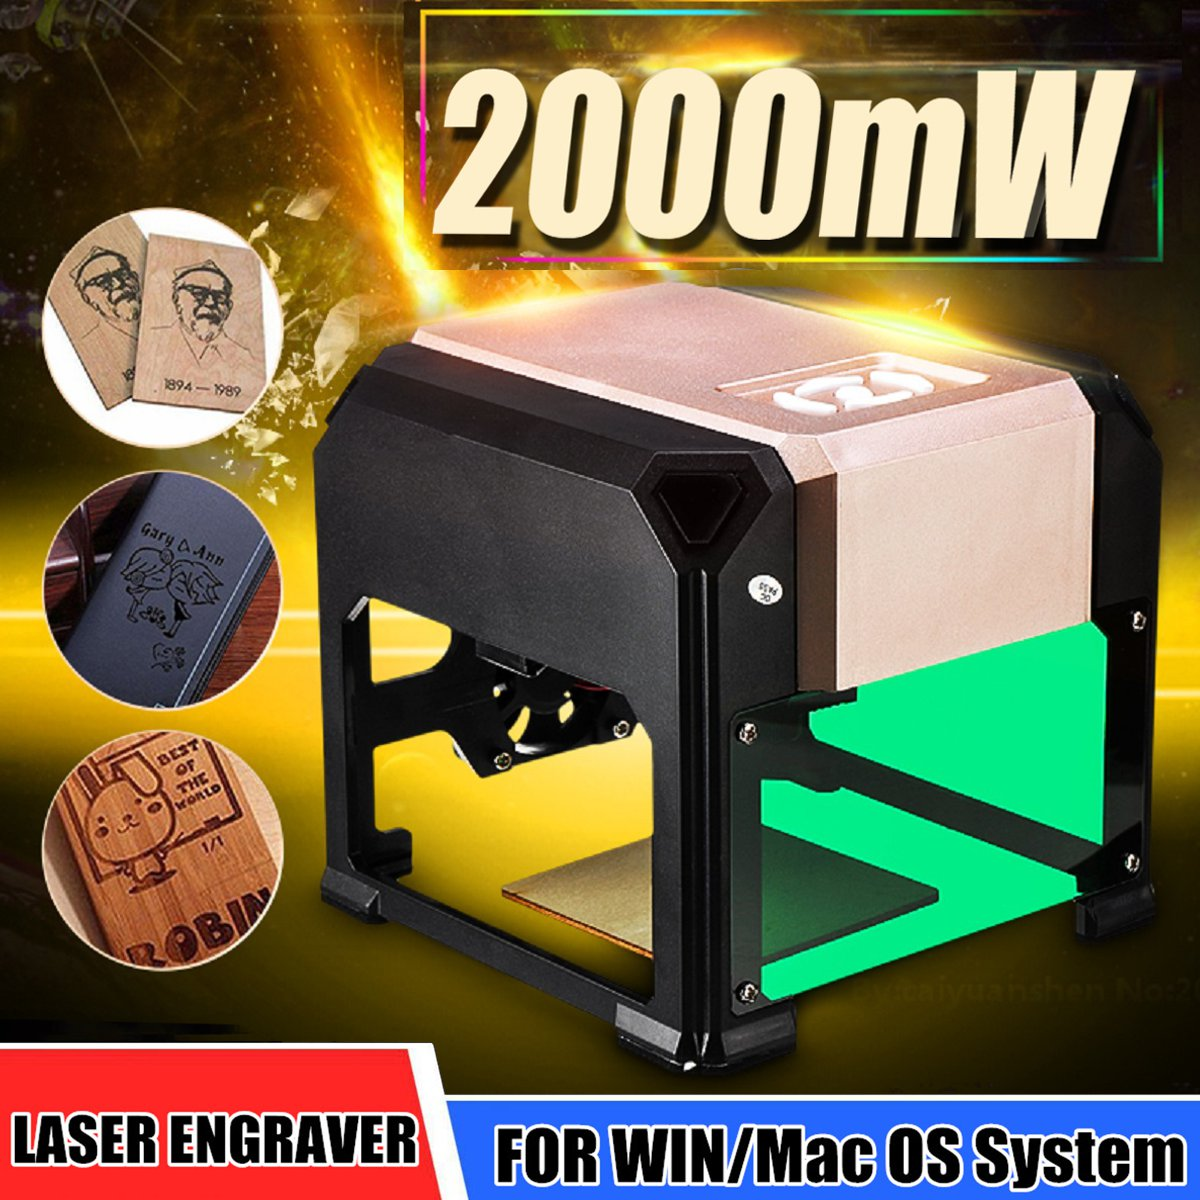 New 2000mW Upgraded USB Laser Engraver Printer Cutter Carver DIY Logo Marking Engraving Machine FOR WIN/Mac OS SystemNew 2000mW Upgraded USB Laser Engraver Printer Cutter Carver DIY Logo Marking Engraving Machine FOR WIN/Mac OS System